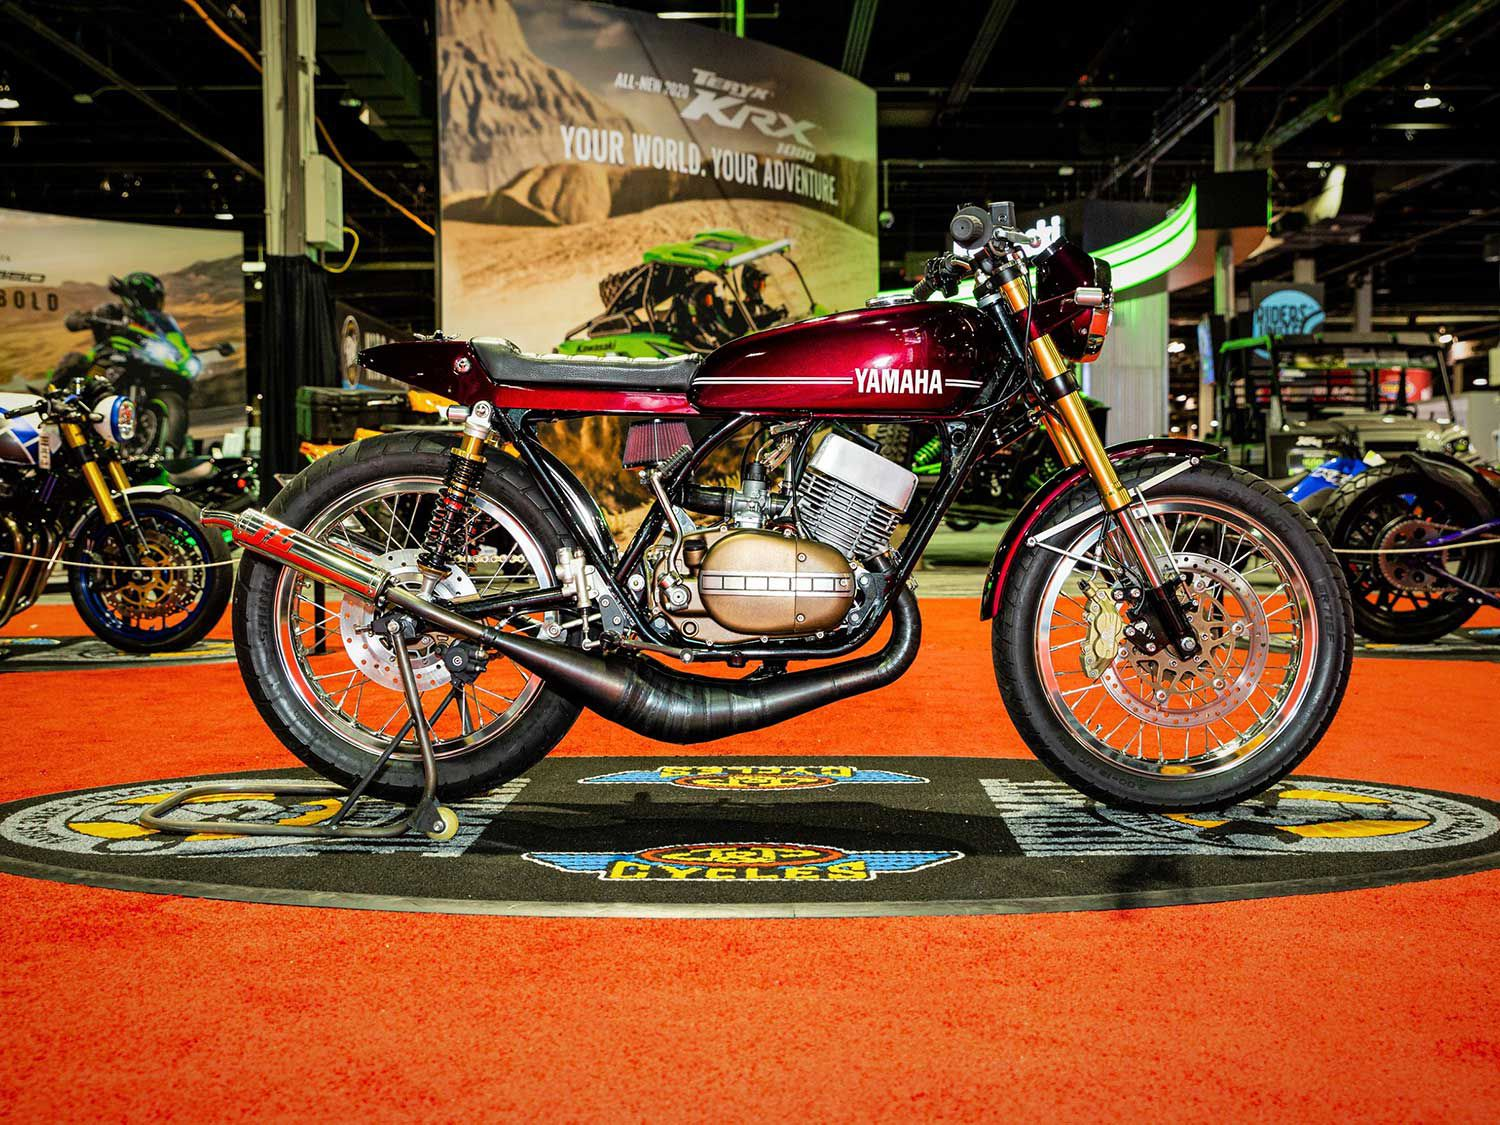 Runner-up in Custom Classic was taken by Jake Shellito who rolled out this super-clean 1974 Yamaha RD350 sporting cool touches like a handmade oil tank and tailsection, and a Yamaha R5 fuel tank.